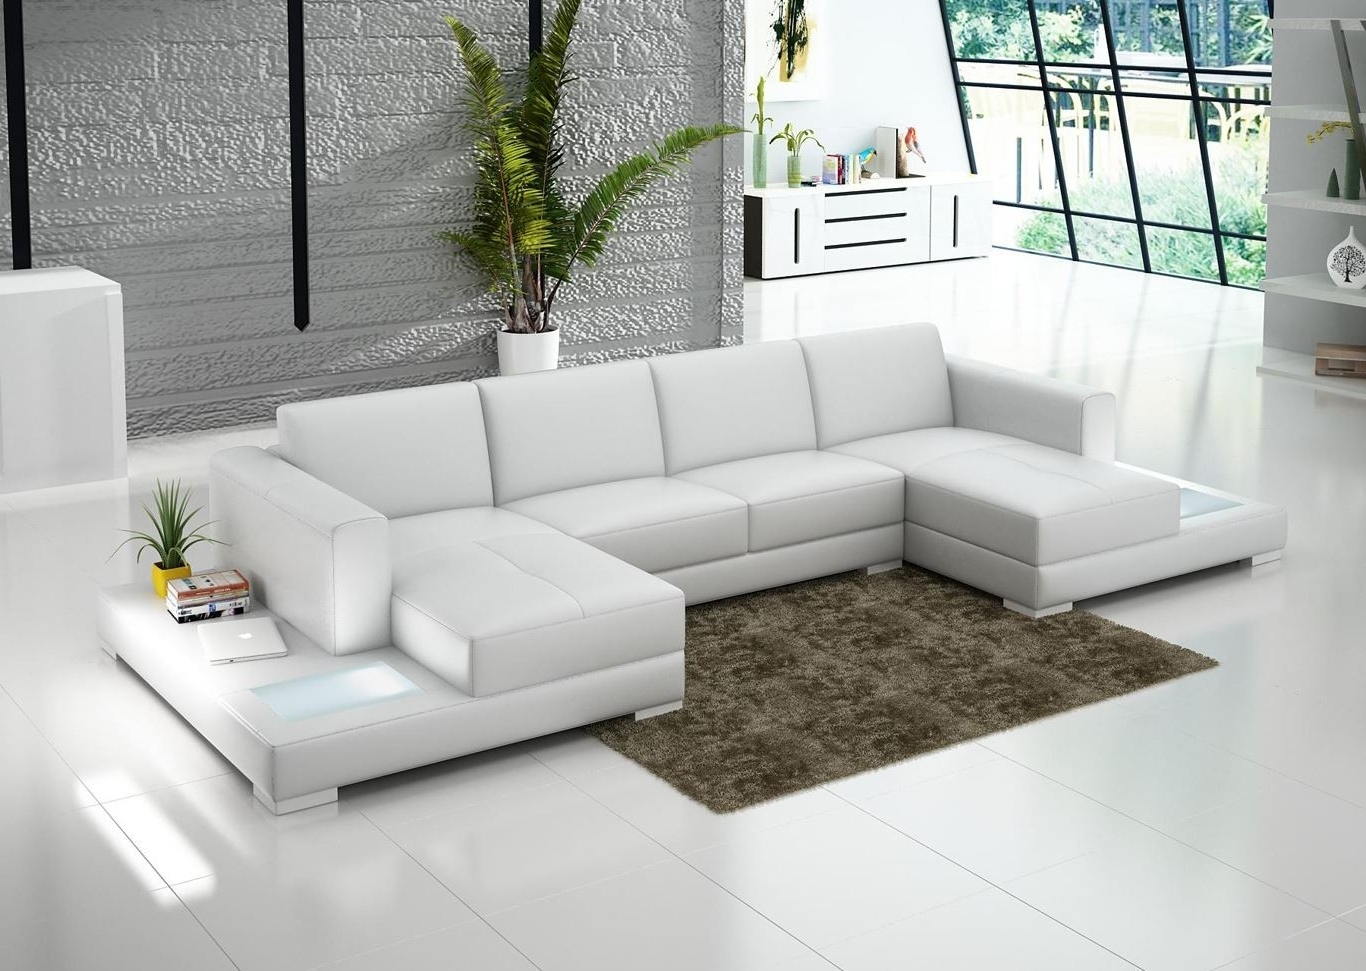 Double Chaise Sectional For Complete And Perfect Welcoming Living Pertaining To Widely Used Double Chaise Couches (View 5 of 15)